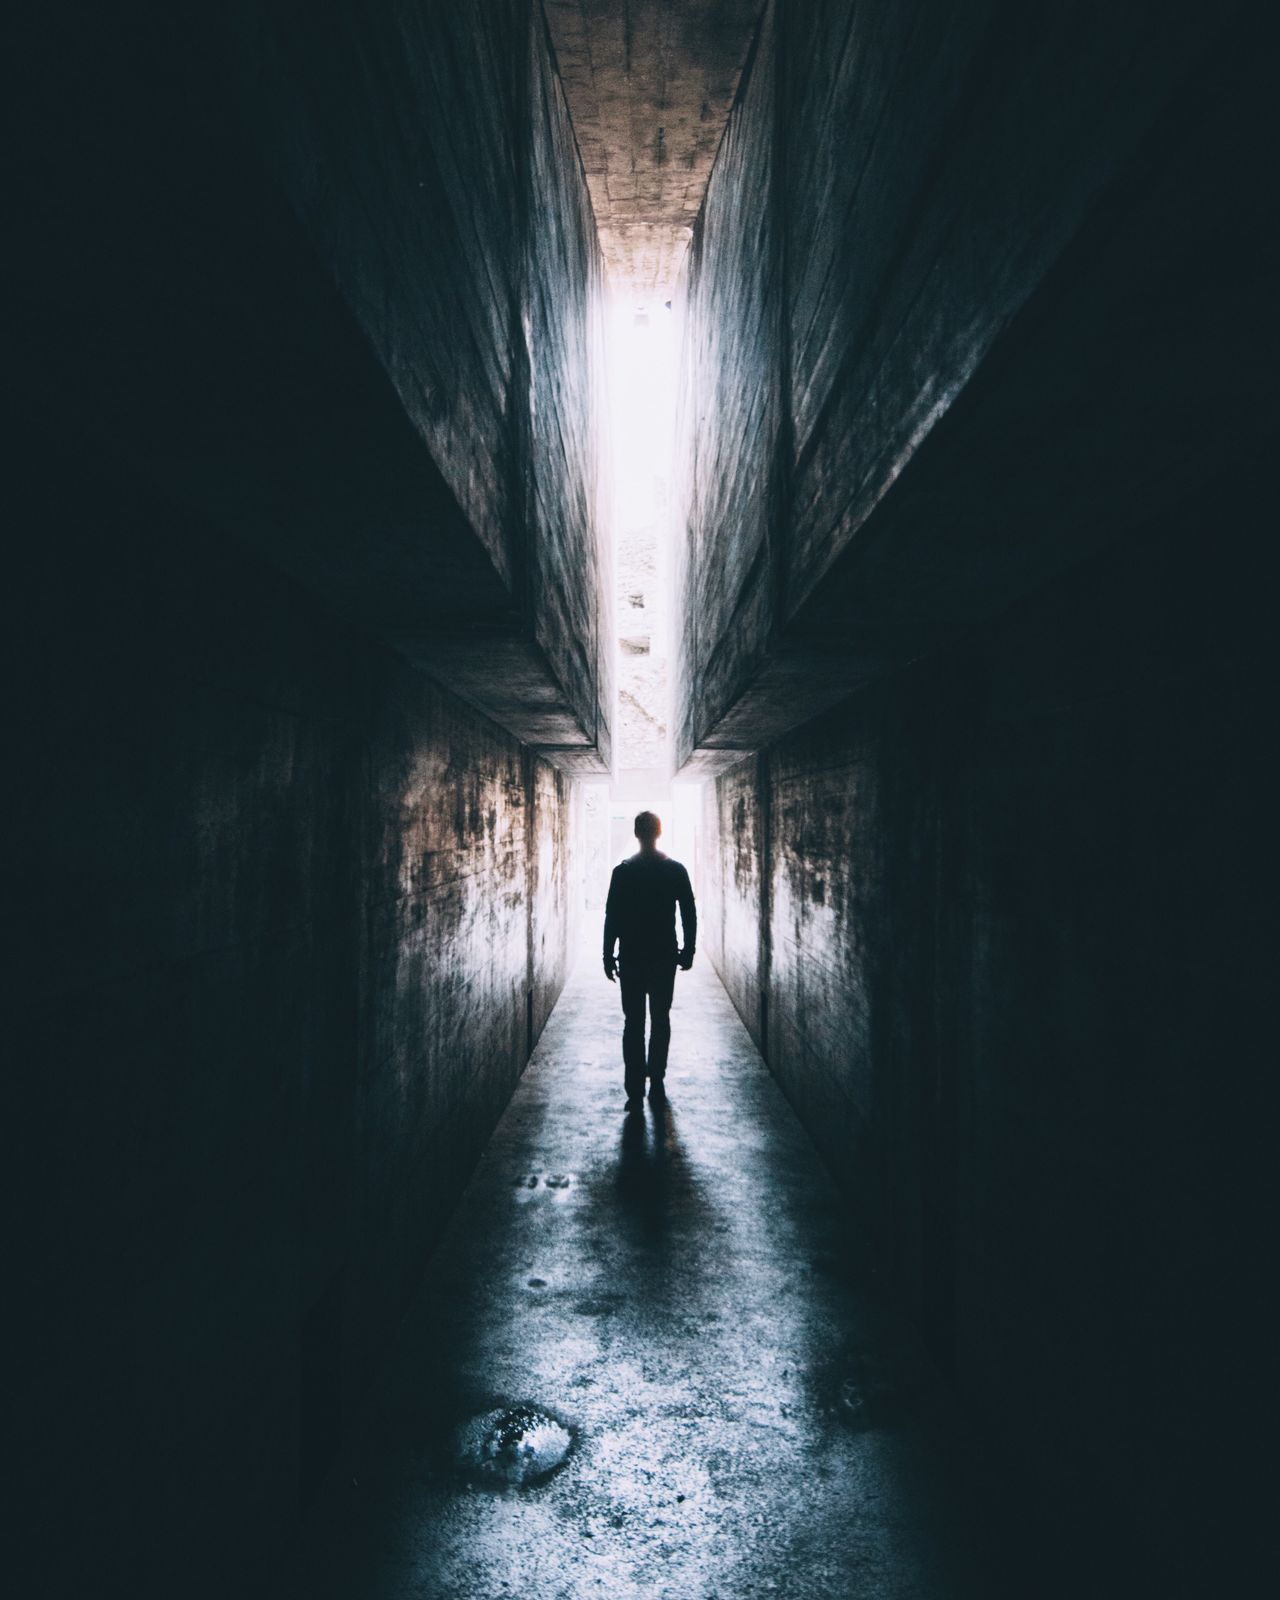 Tunnel Indoors  Walking Full Length One Person Rear View Silhouette Light At The End Of The Tunnel Men Built Structure The Way Forward Architecture Real People One Man Only Lifestyles Day Adult Only Men People Light And Shadow Light Daylight Creepy Scary Mysterious The Street Photographer - 2017 EyeEm Awards